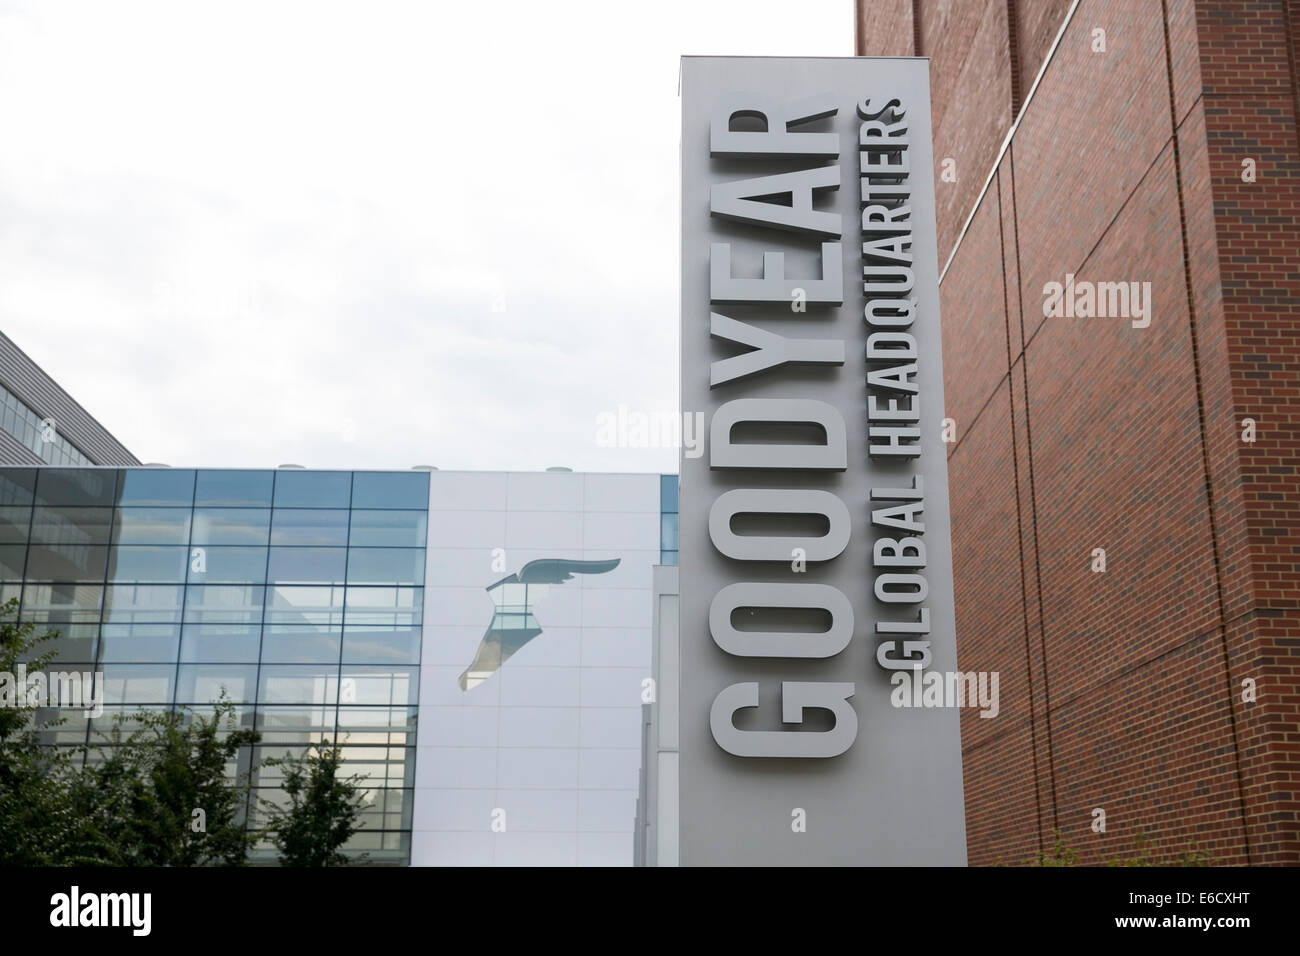 The headquarters of The Goodyear Tire & Rubber Company in Akron, Ohio. - Stock Image